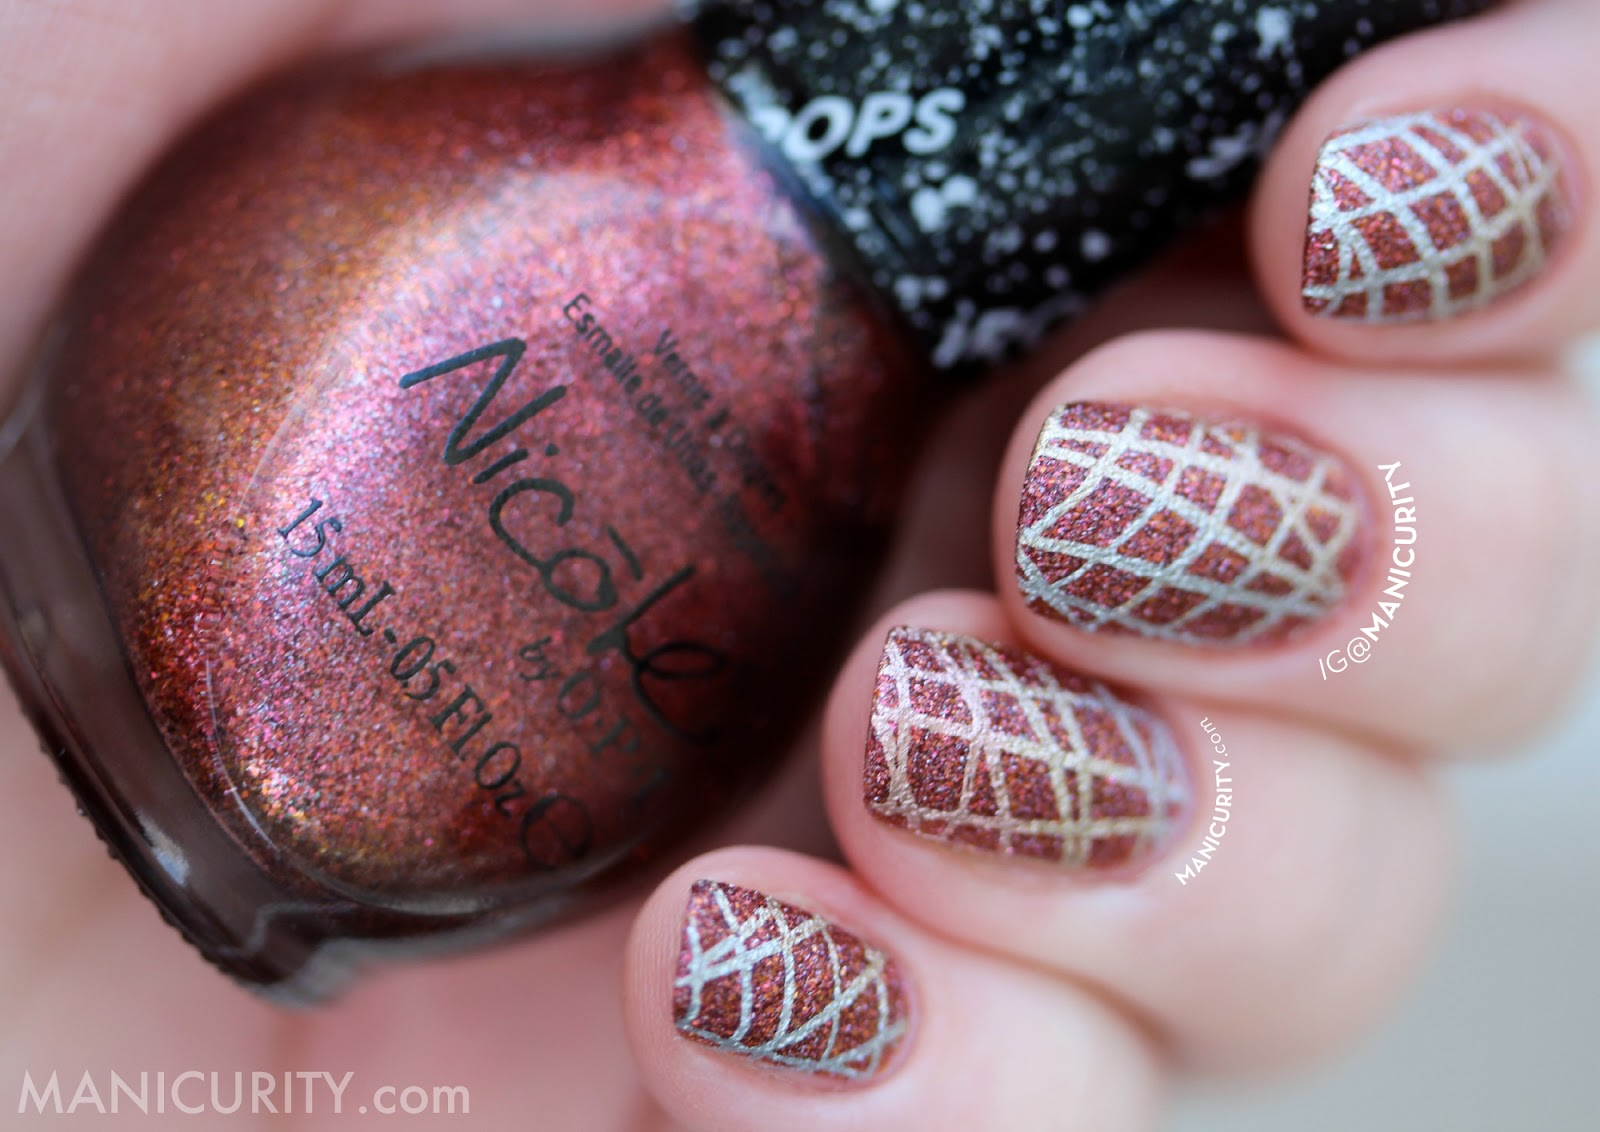 The Digit-al Dozen does Texture: Nicole by OPI Gumdrop Cinna-Man of My Dreams Nails with Mixed Metal Gradient Stamped nail art | Manicurity